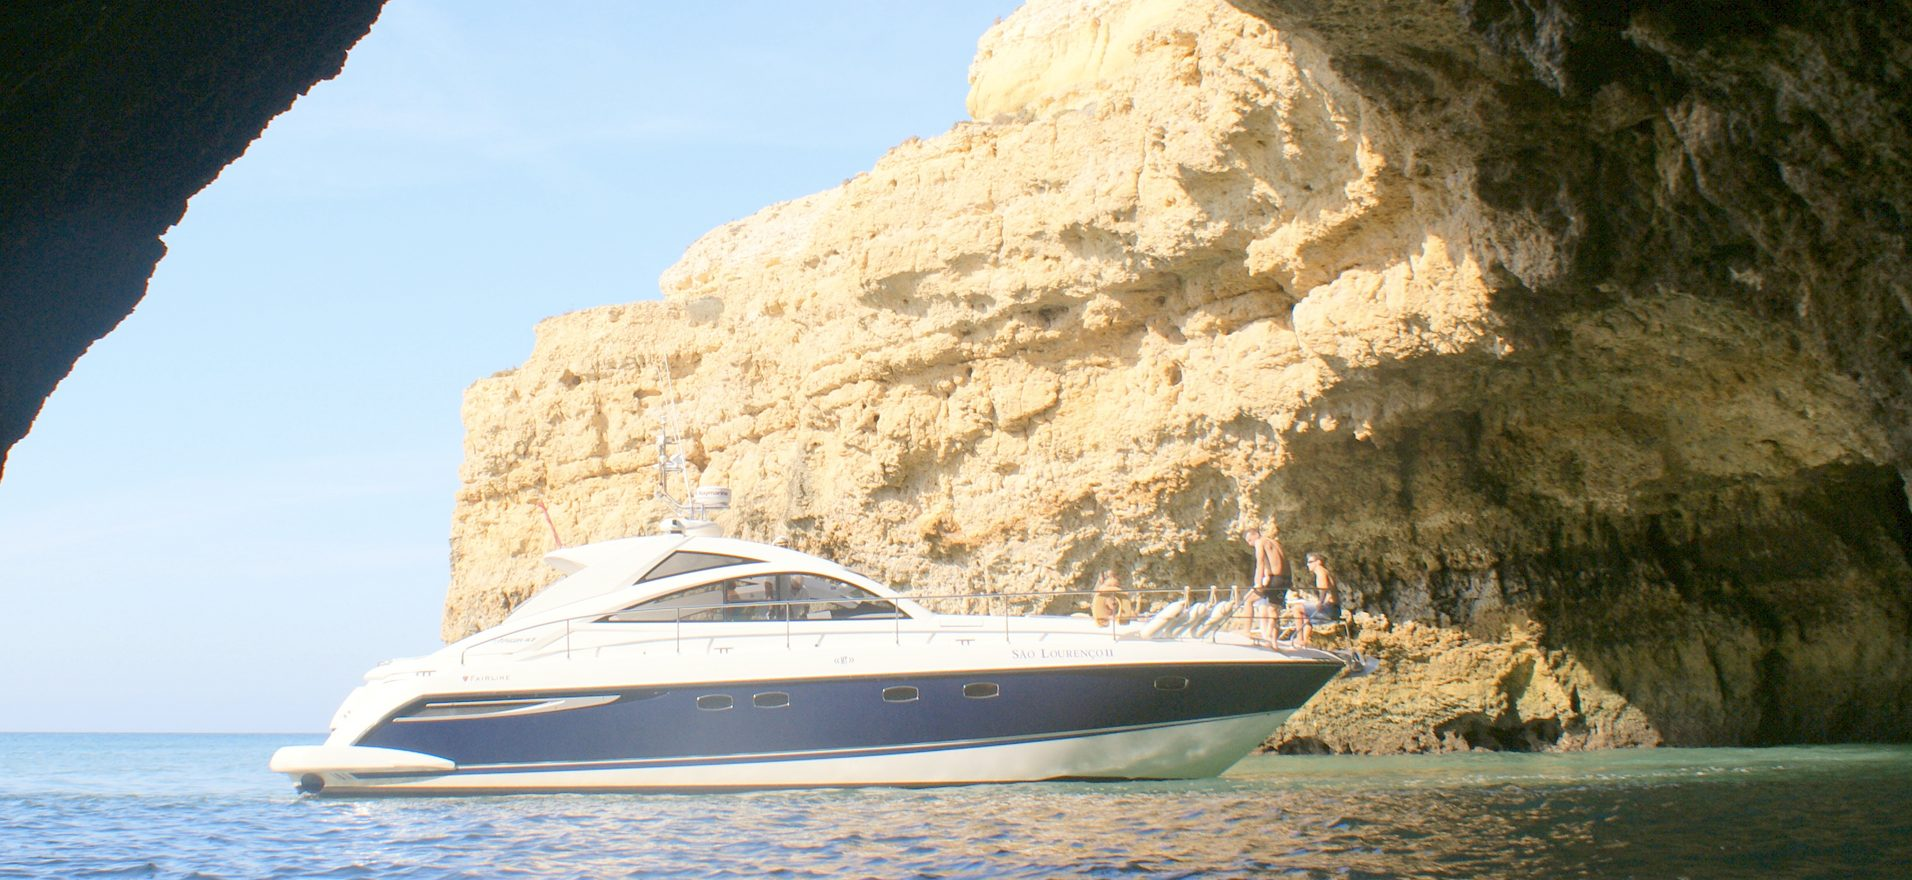 albufeira luxury yacht hire Fairline targa 47